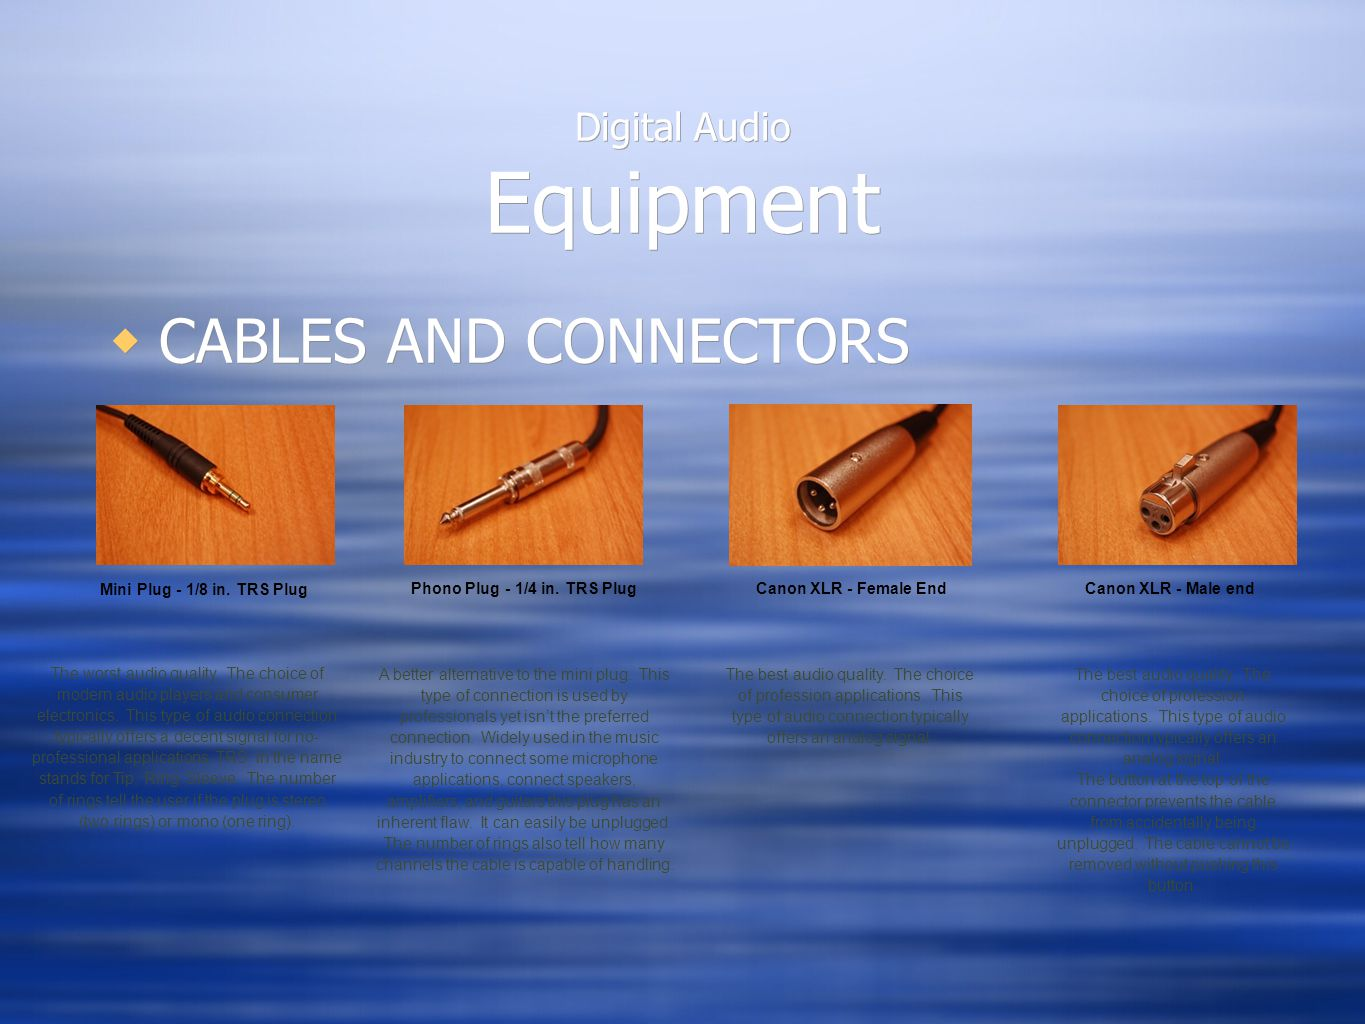 Digital Audio Equipment  CABLES AND CONNECTORS Mini Plug - 1/8 in. TRS Plug The worst audio quality. The choice of modern audio players and consumer